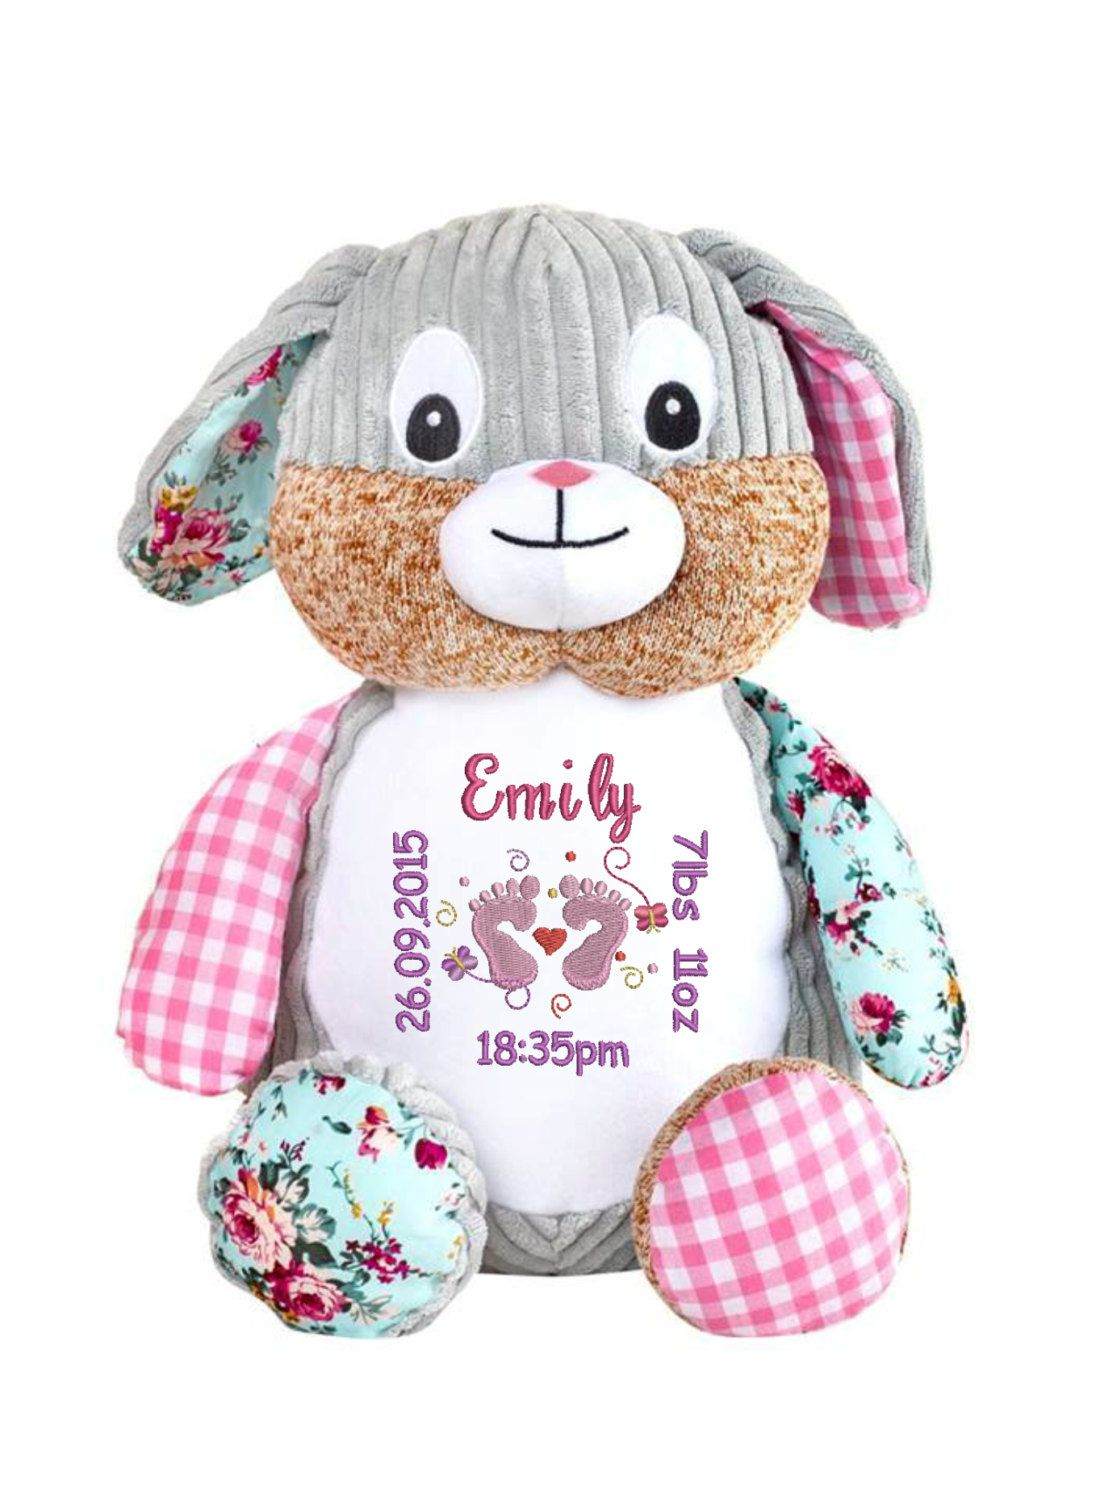 Personalised embroidered harlequin rabbit teddy bear a great personalised embroidered harlequin rabbit teddy bear a great unique gift baby gift new born negle Images